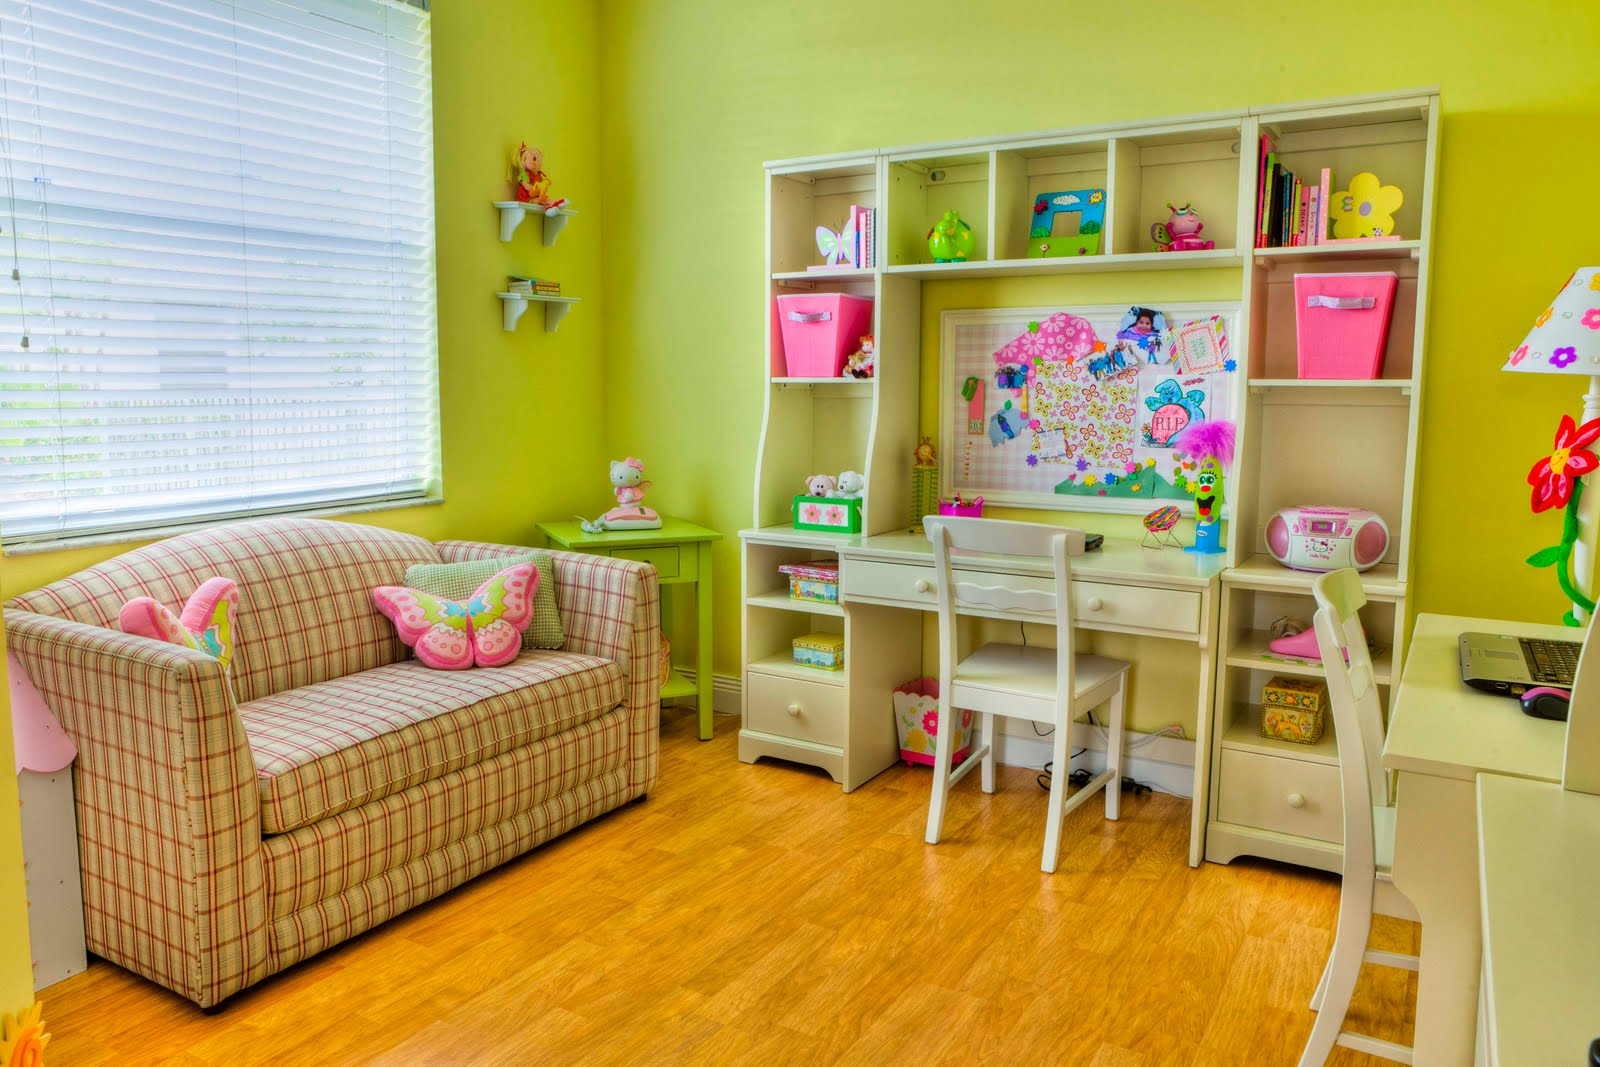 Intramuros Design: Children's Room Design